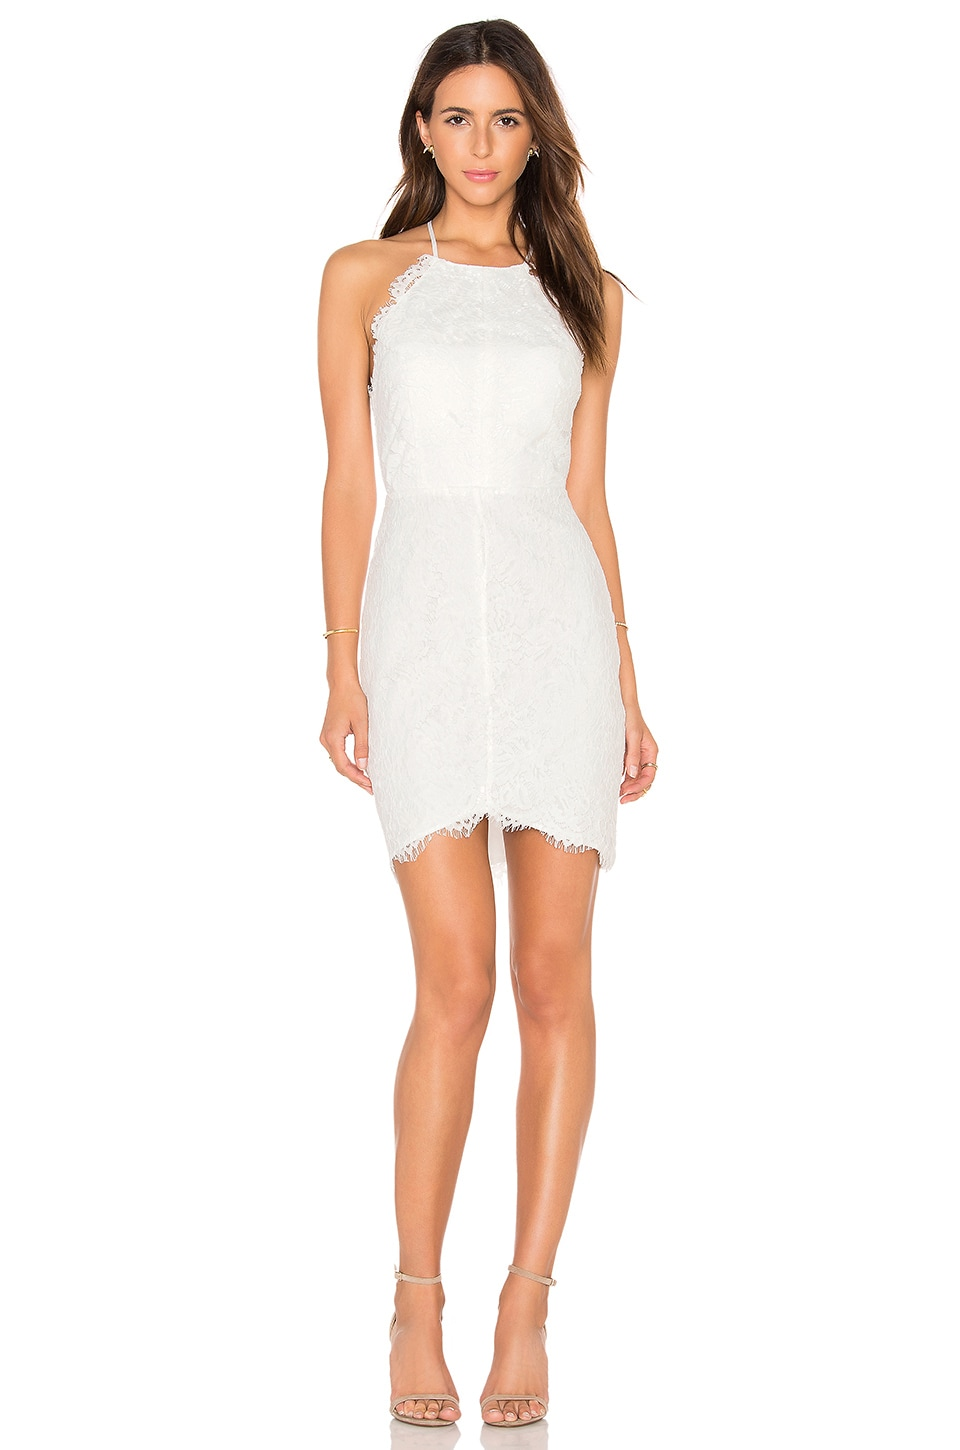 Bobi BLACK Mixed Chiffon Lace Bodycon Dress in White